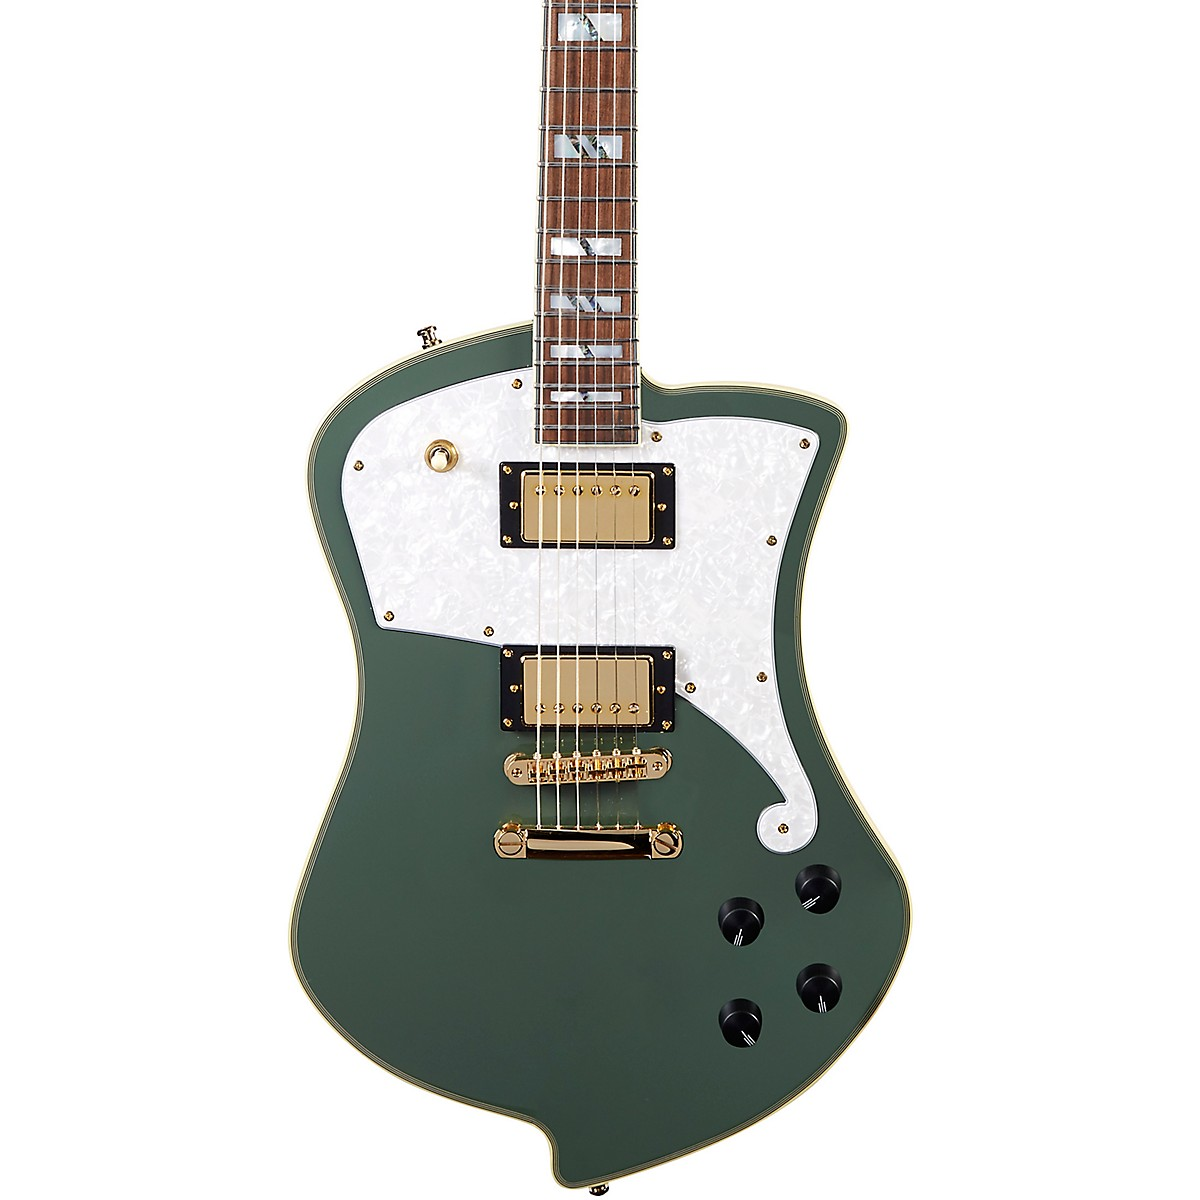 D'Angelico Deluxe Series Ludlow Electric Guitar with Stopbar Tailpiece